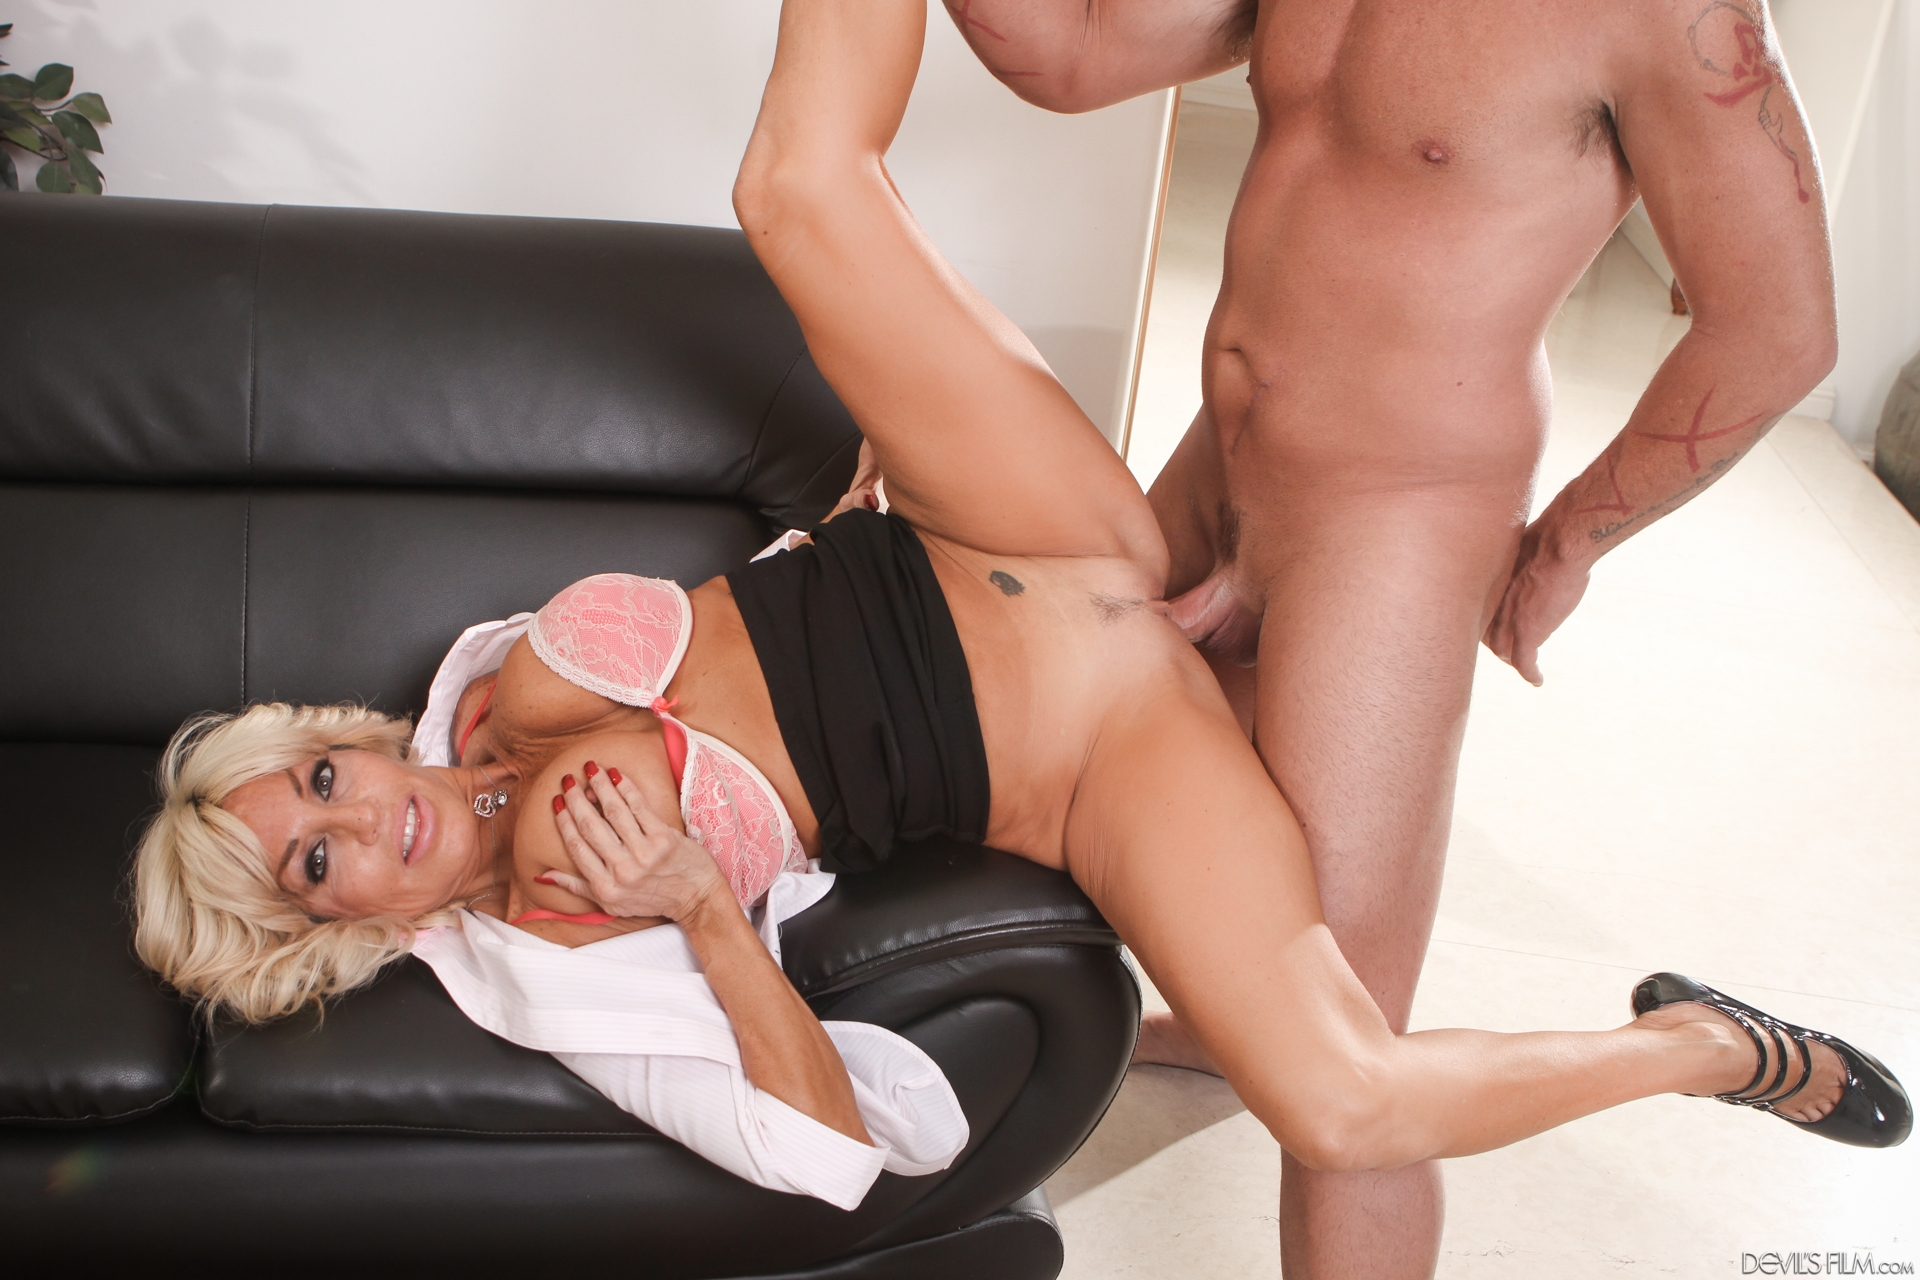 My Wife Caught Me Assfucking Her Mother 5 Porn devils film tara holiday & rusty nails & giselle mari 125172